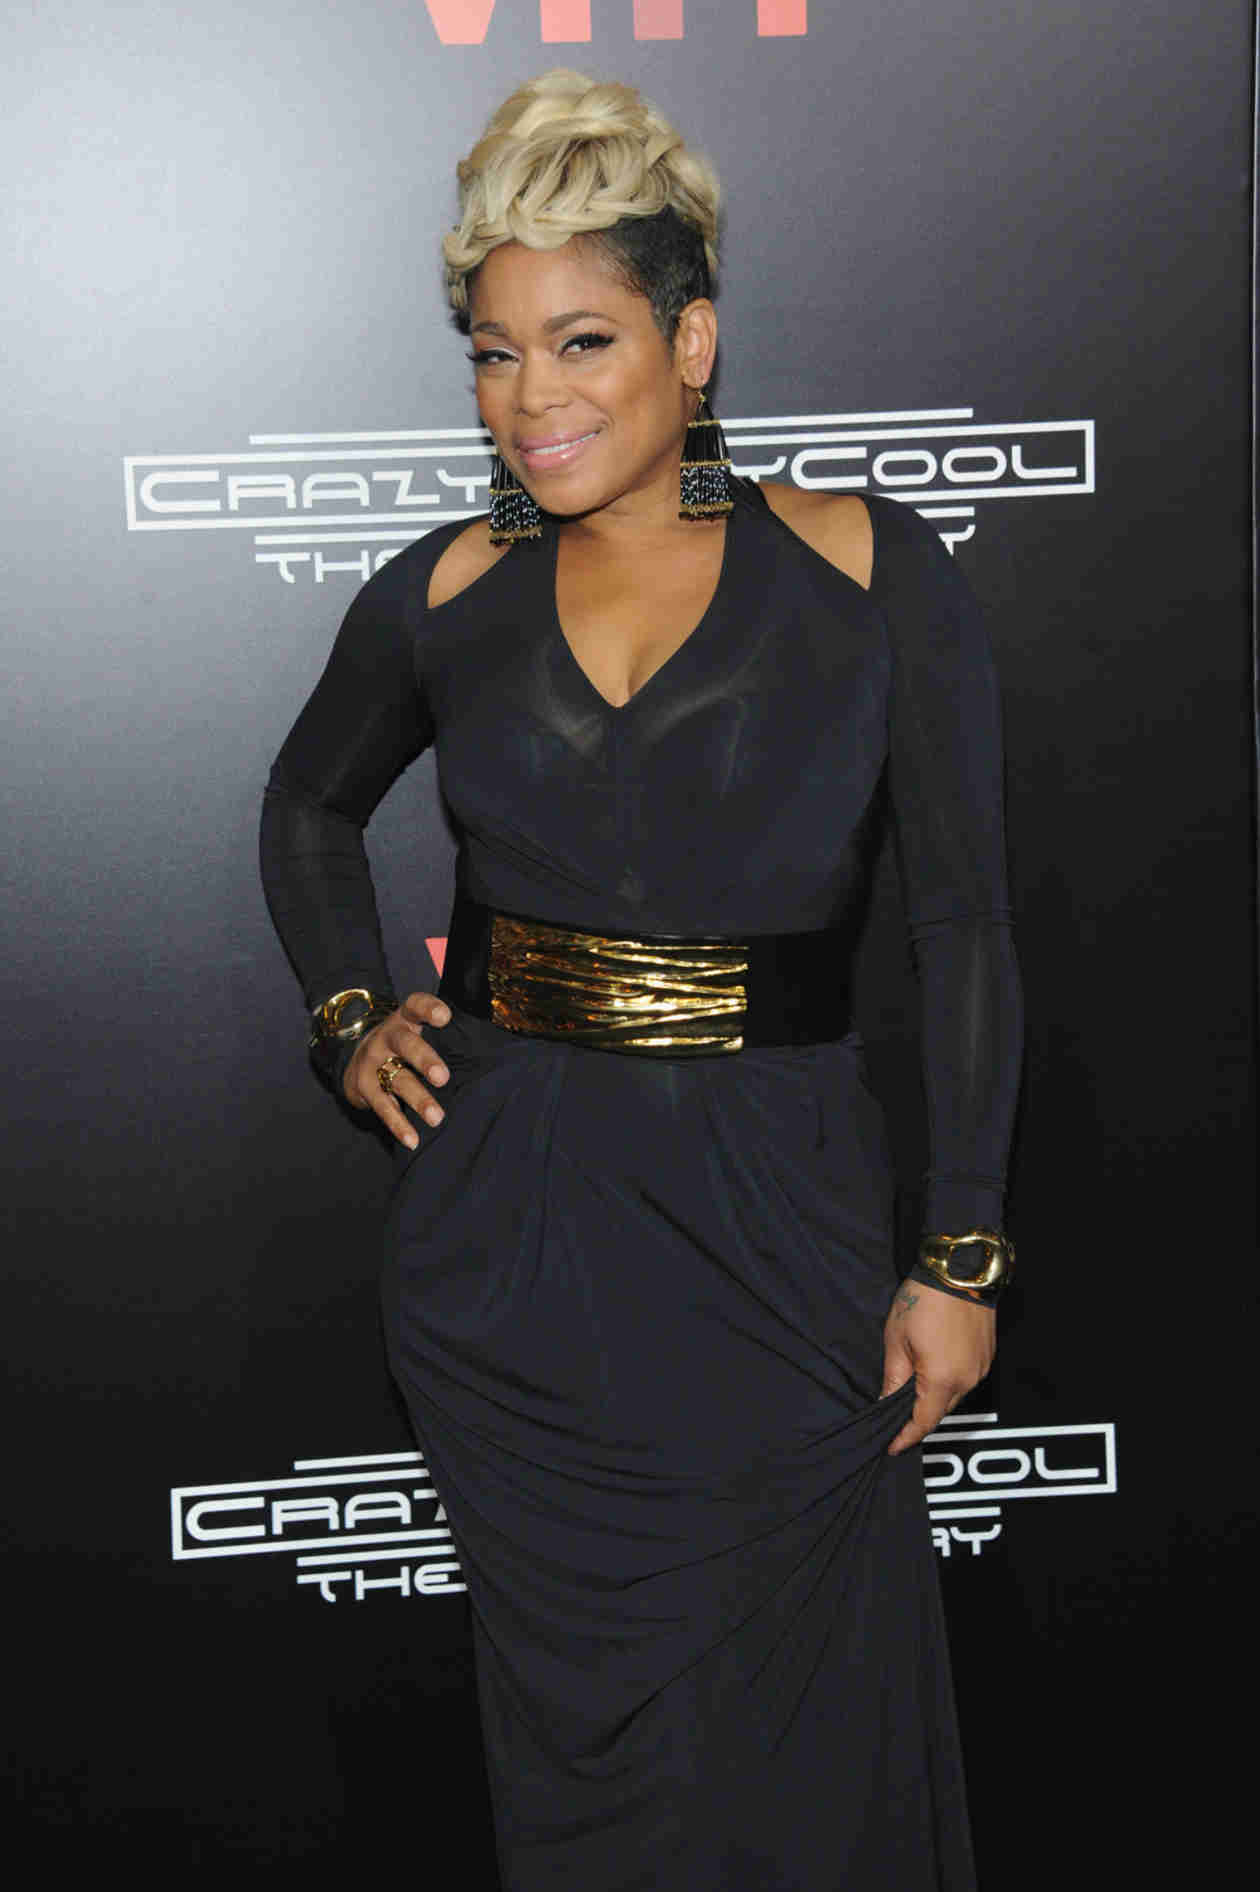 T-Boz's Daughter, Chase, Is 13: What Does She Look Like Now?